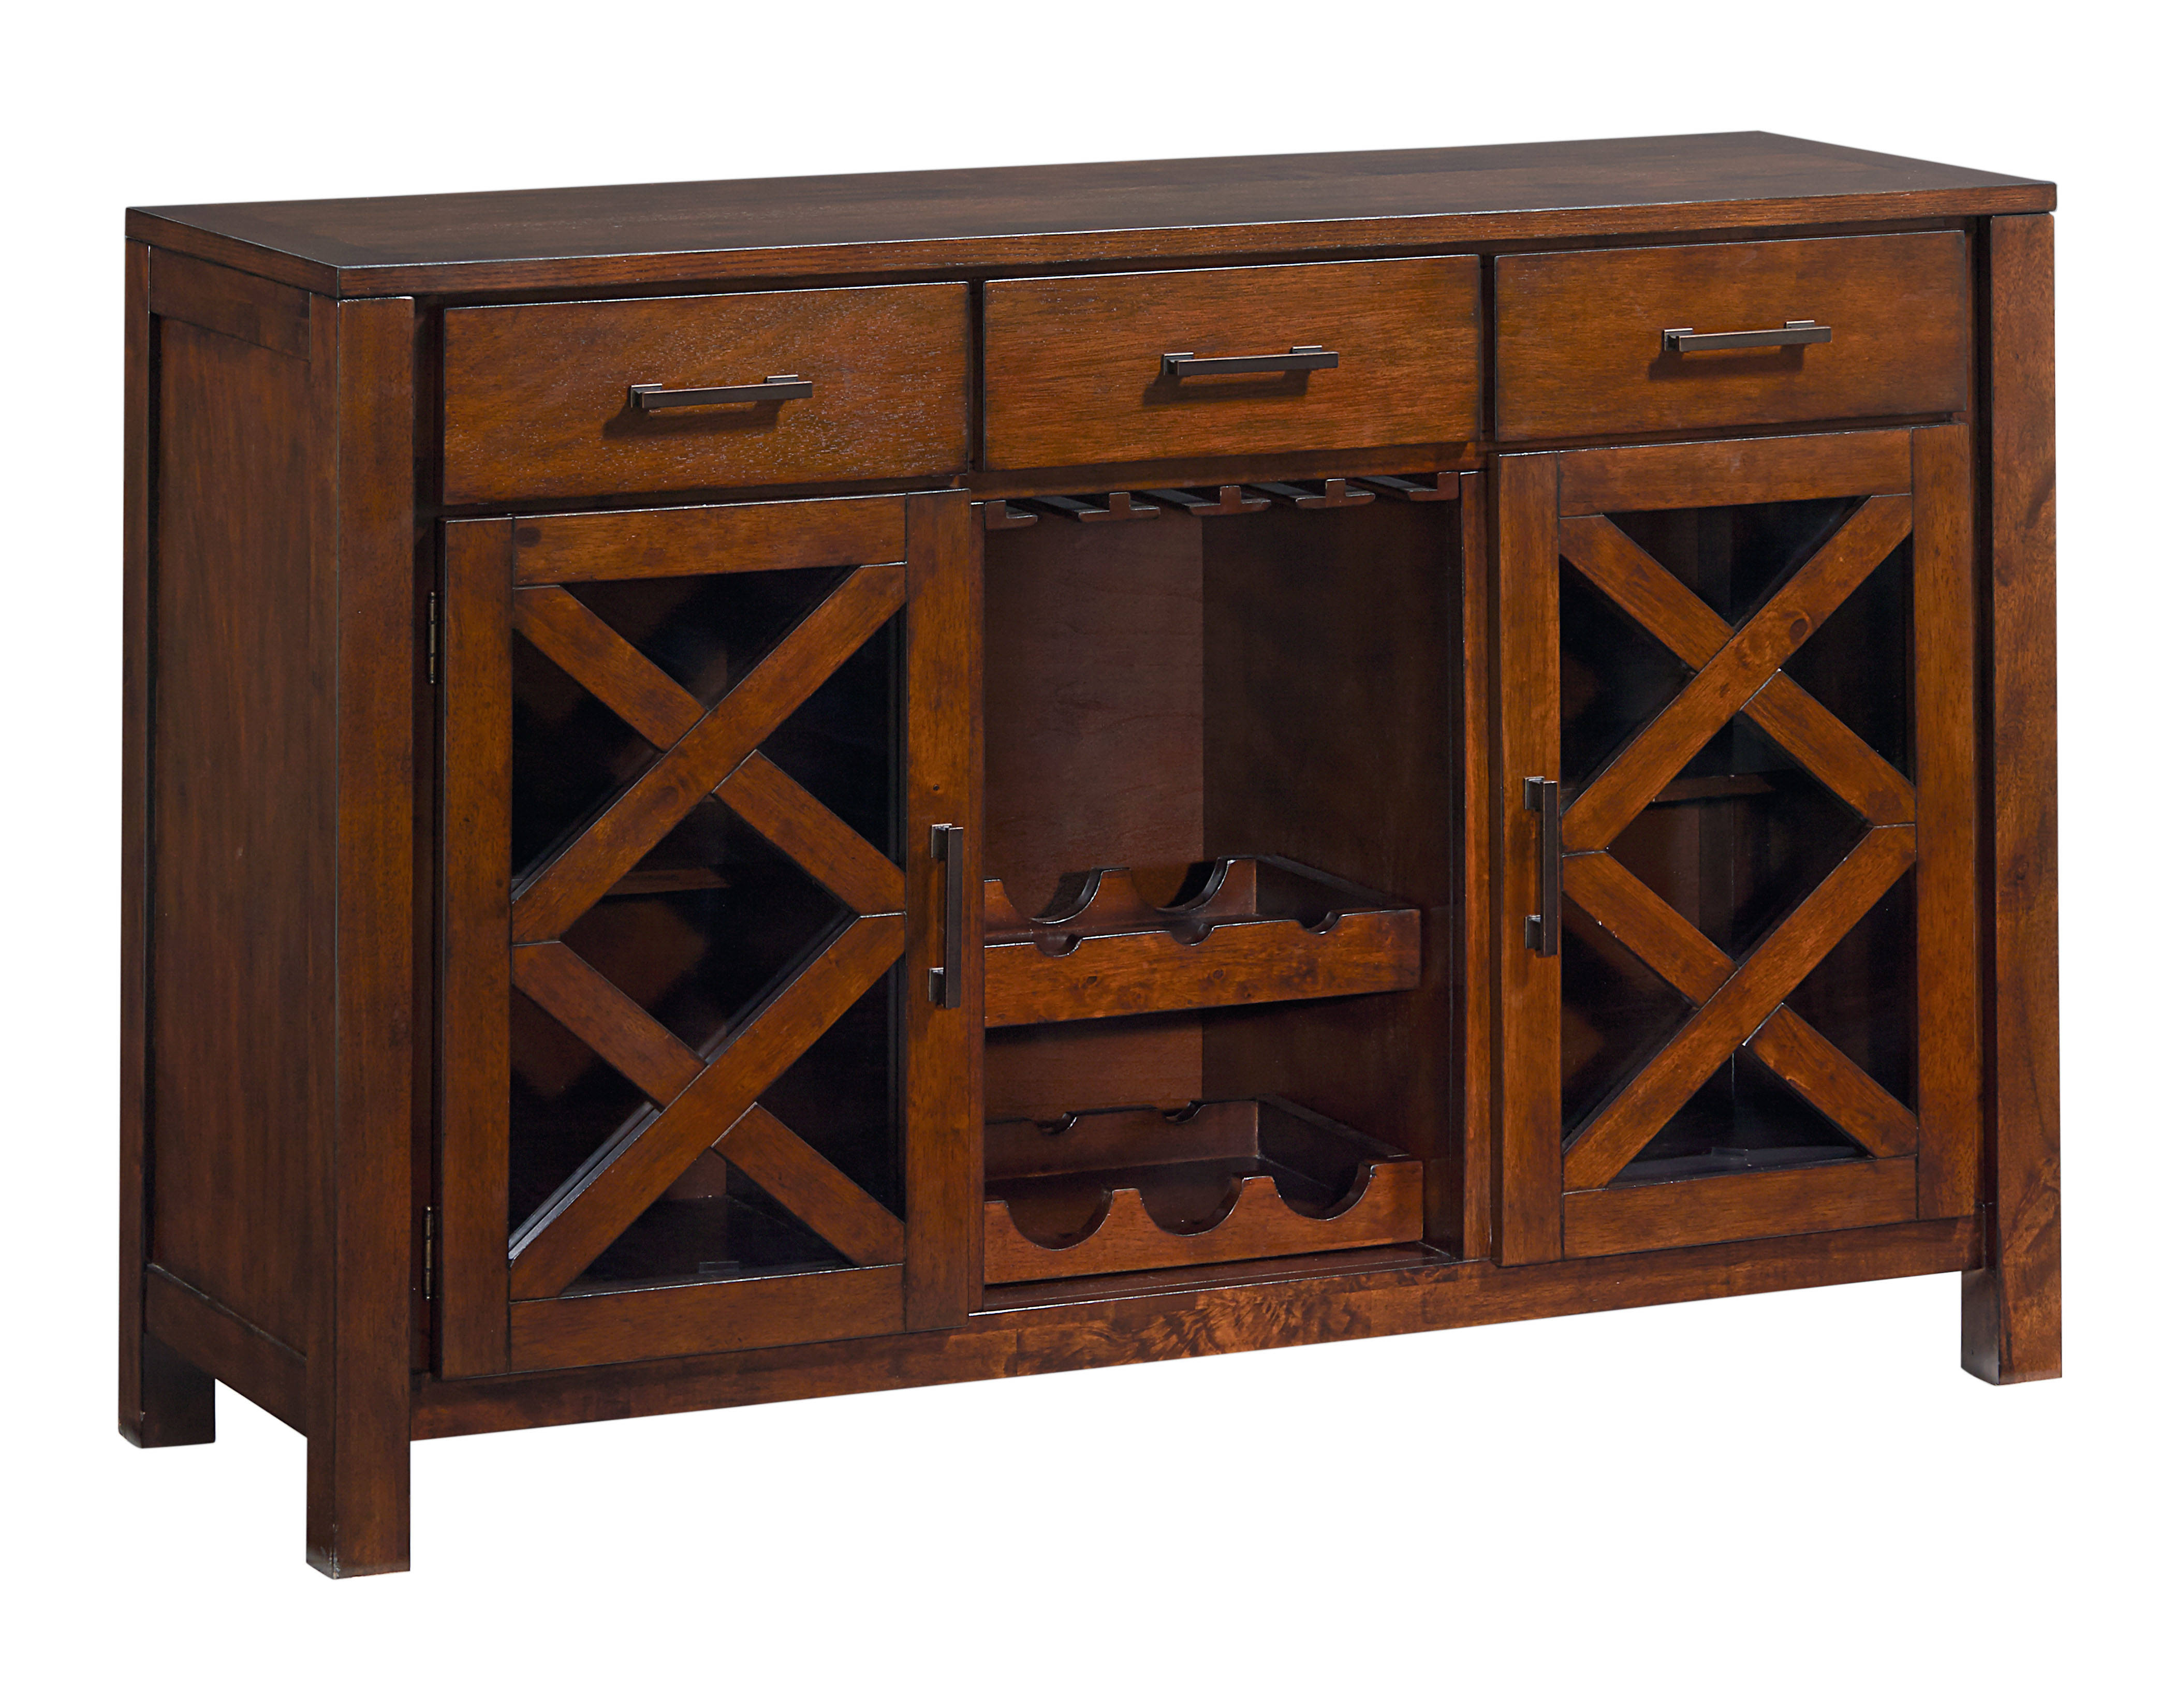 Standard Furniture Omaha Saddle Brown Sideboard The Classy Home